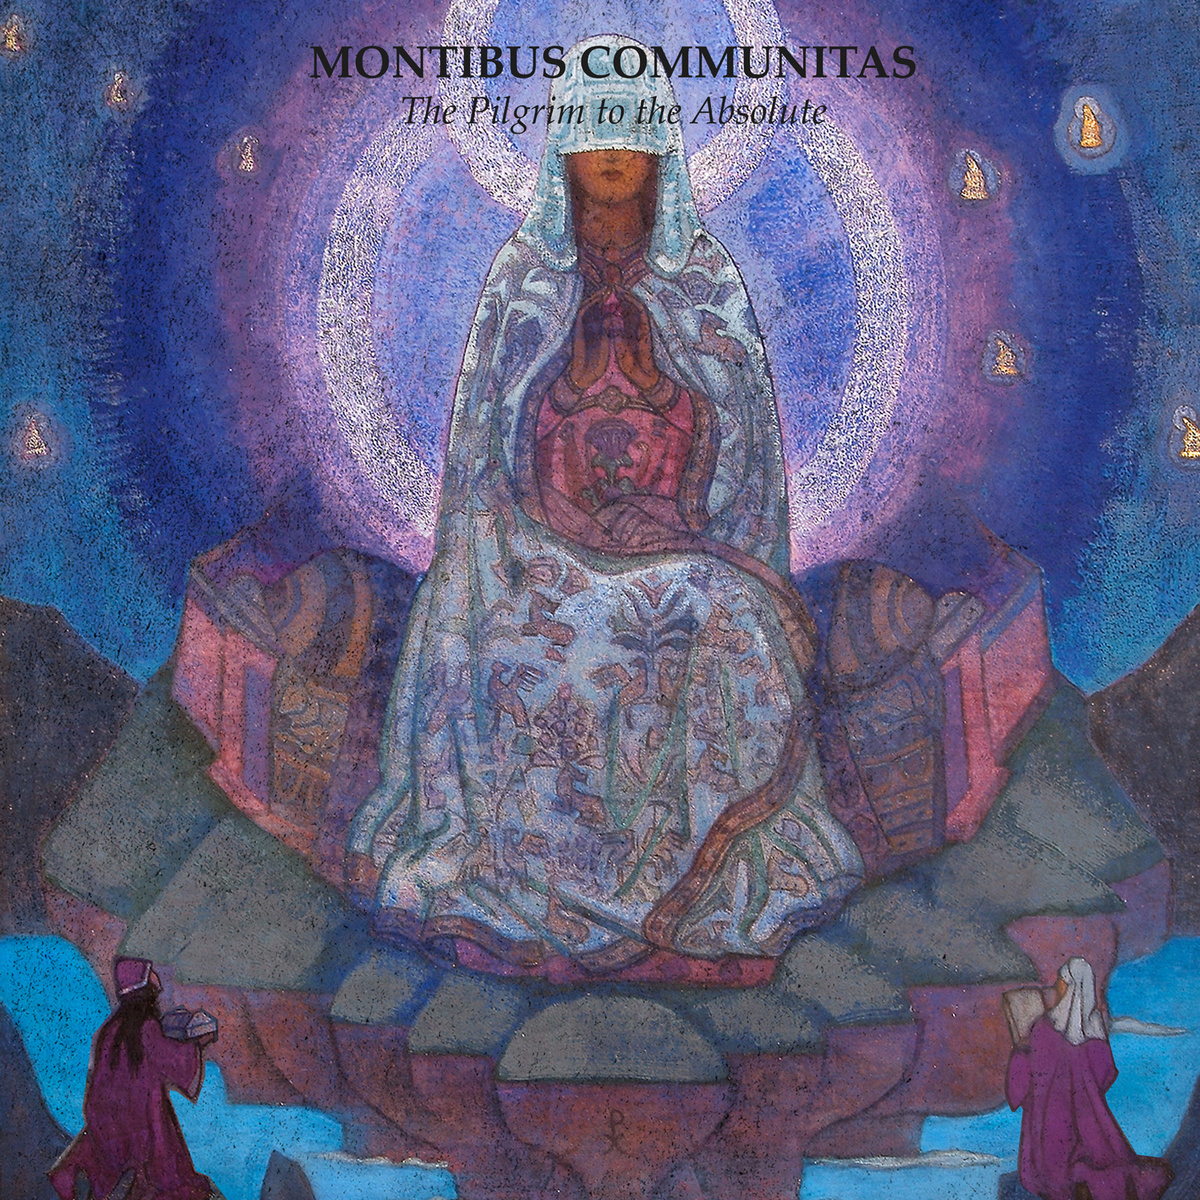 montibus-communitas-the-pilgrim-to-the-absolute